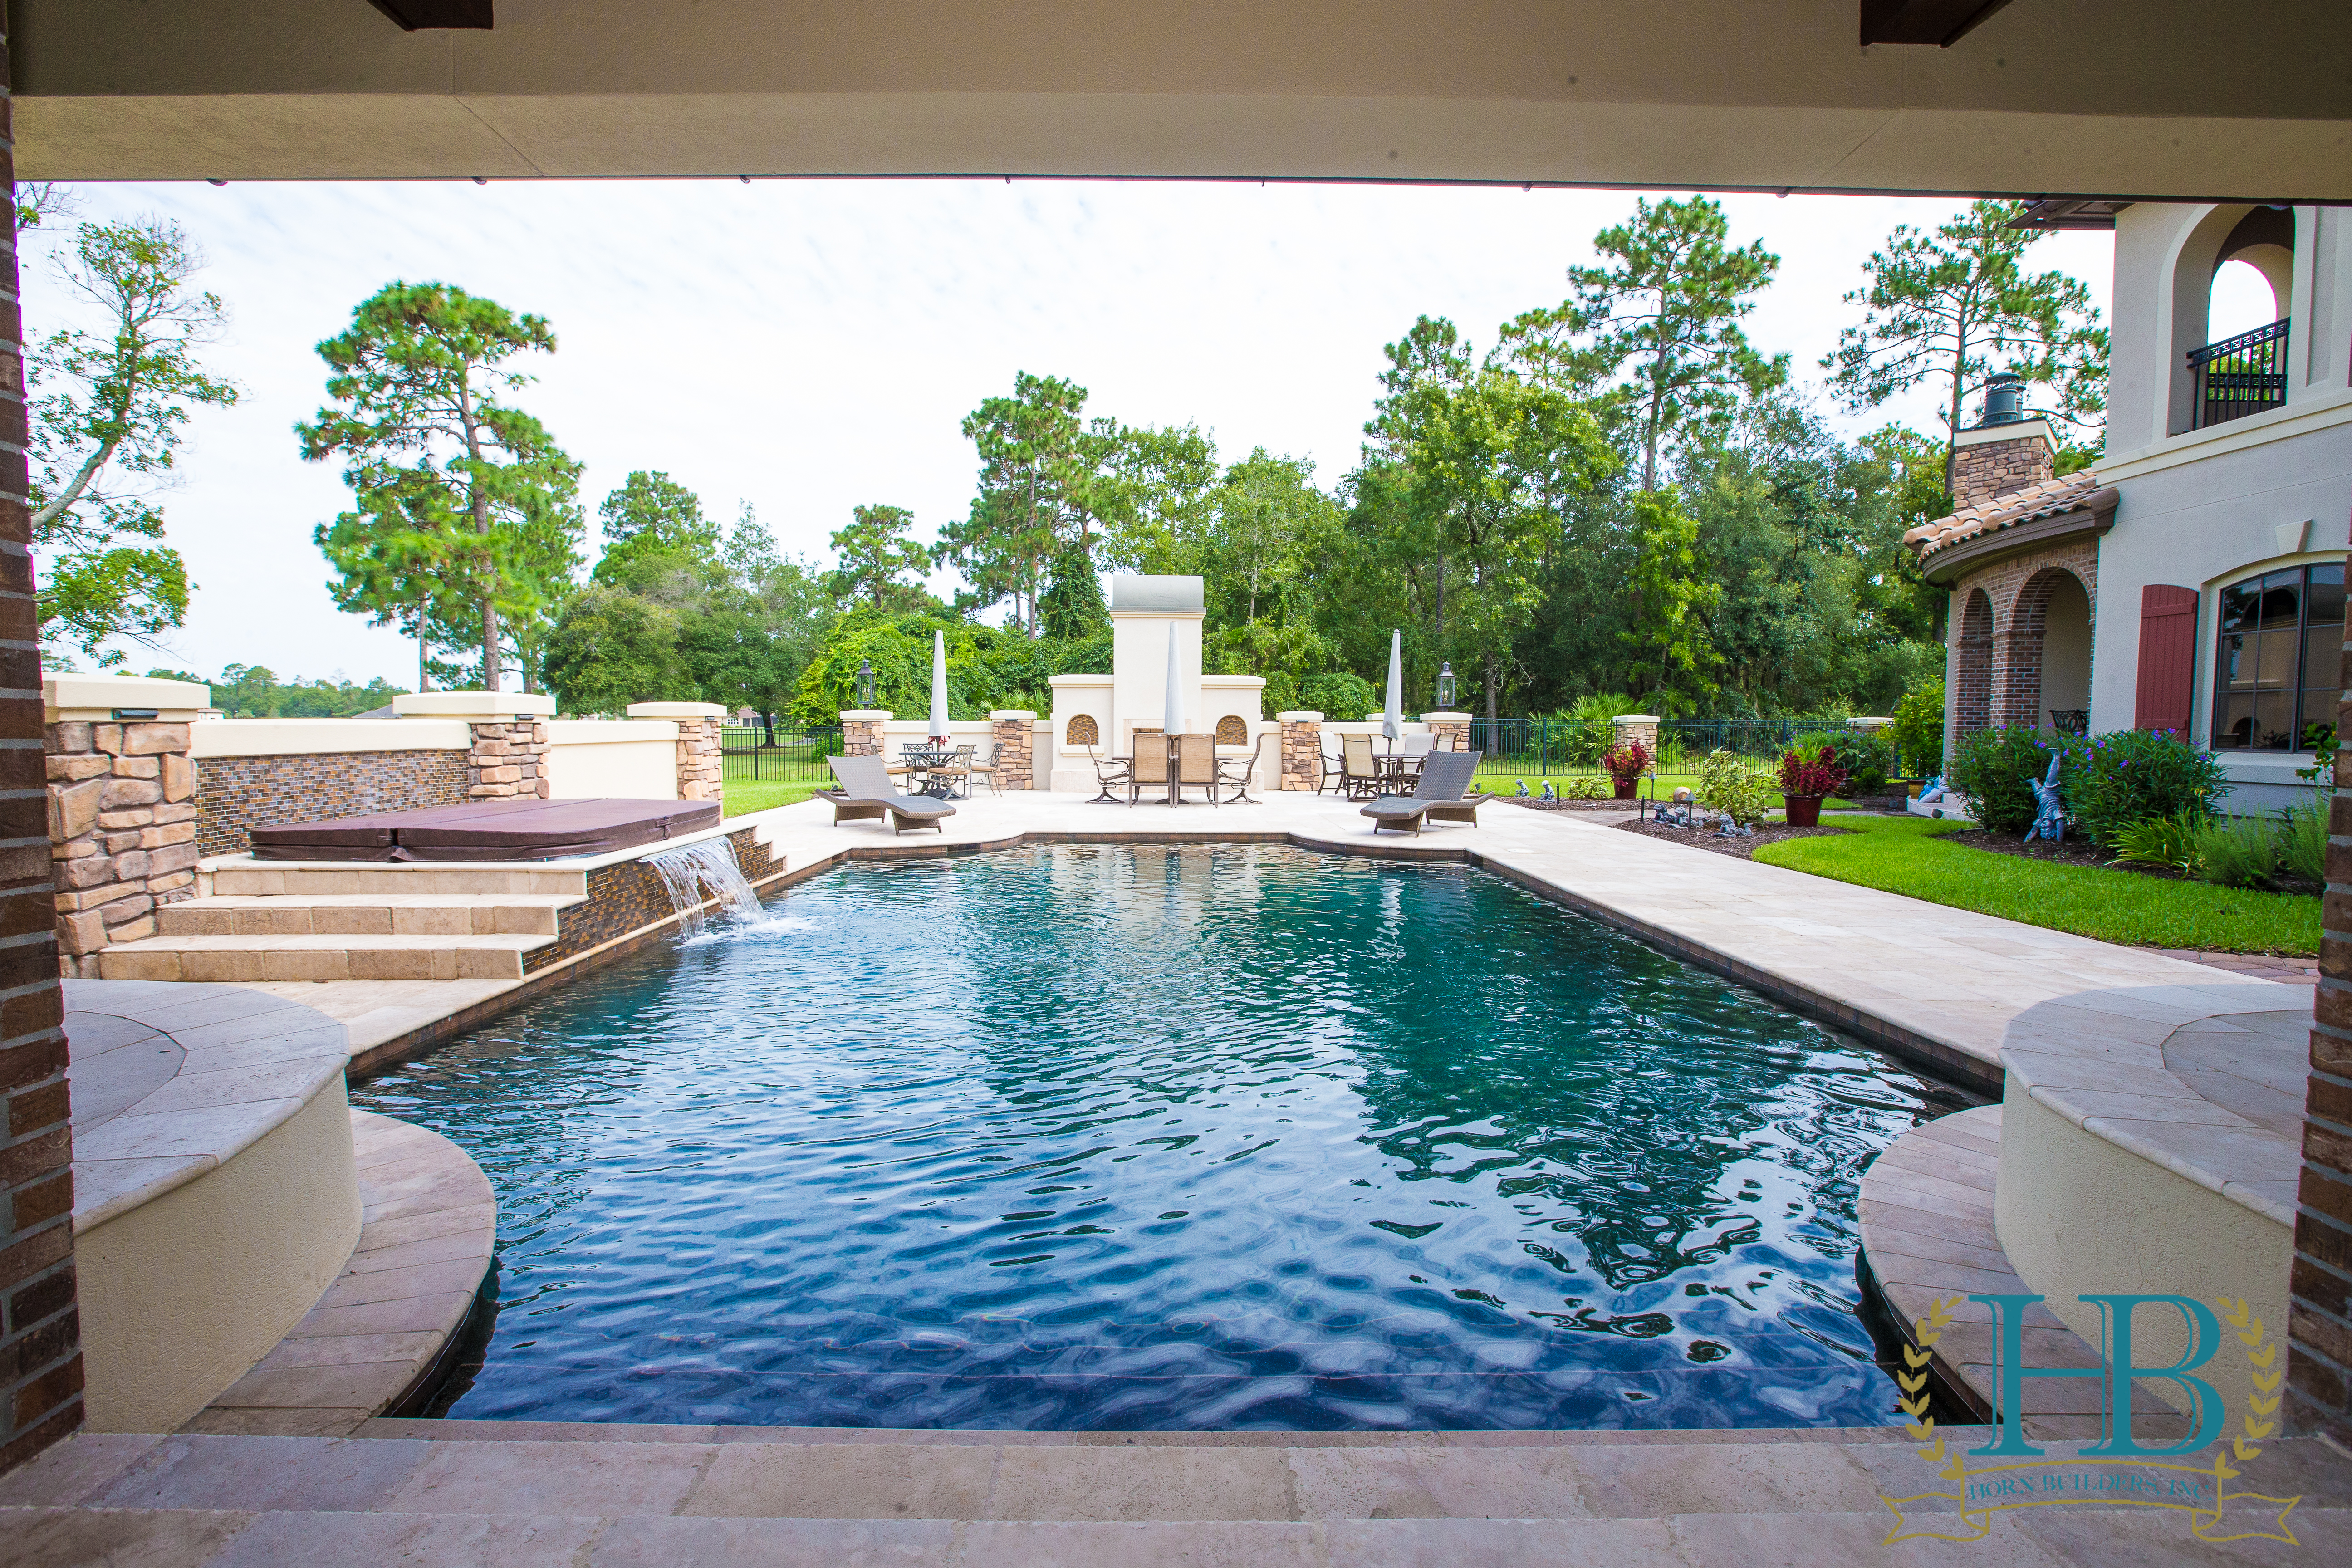 Relaxing By The Pool With A Good Book Our Remodeling And Landscaping Experts Will Leave No Stone Unturned To Take Your Backyard From Plain Paradise